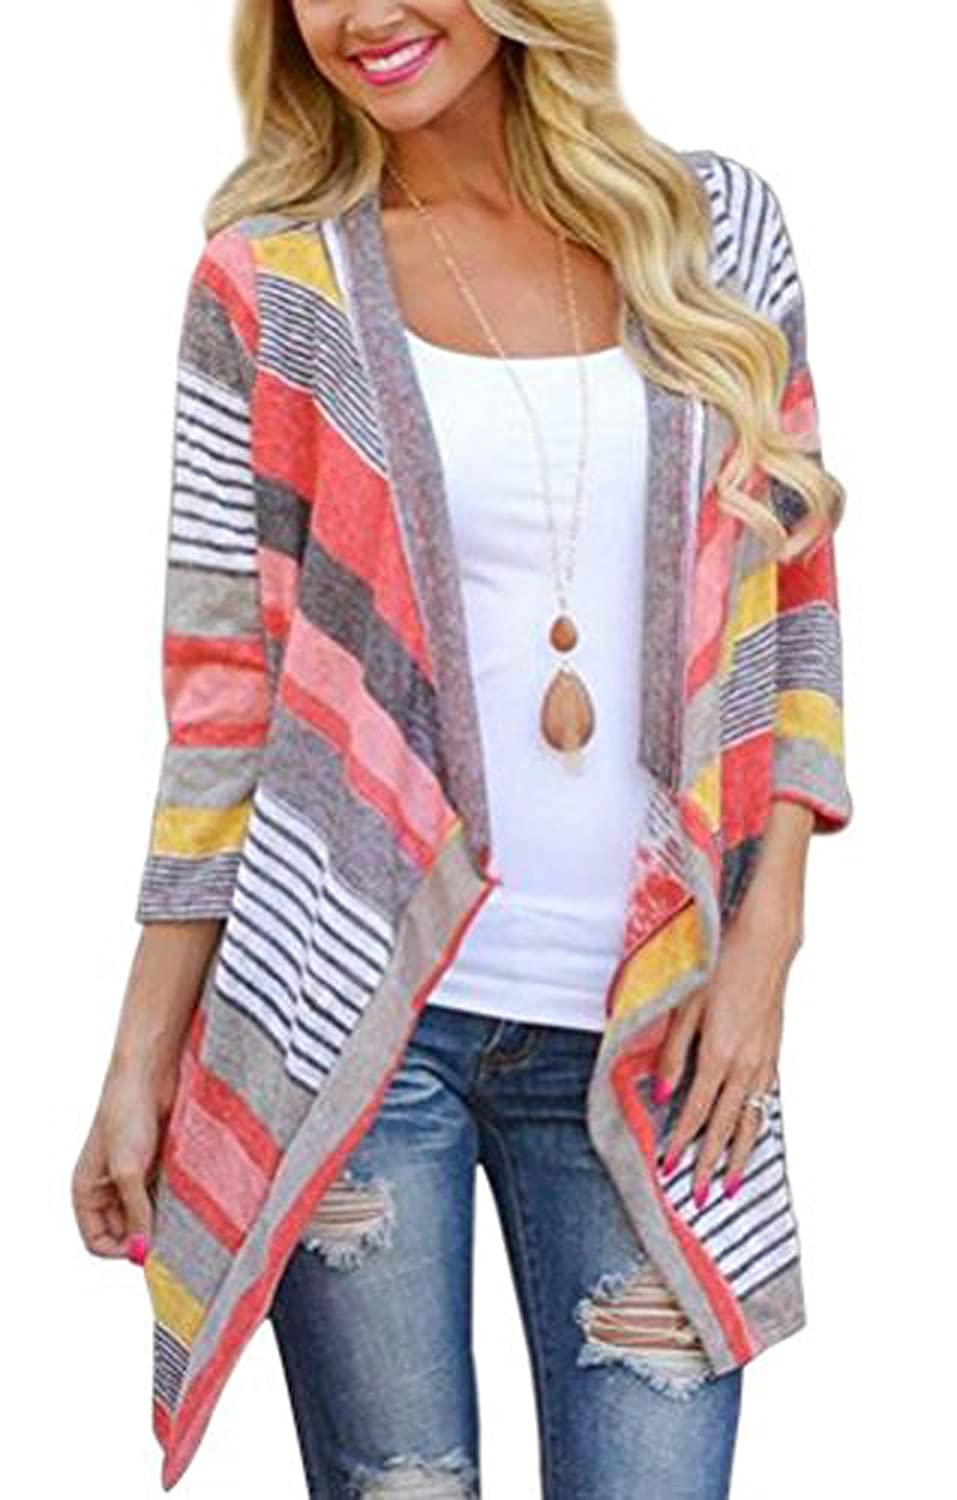 Tomlyws Women's Tops 3 4 Sleeve Poncho Blouses Geometric Print Drape Front Cable Knit Cardigan WT15-$P